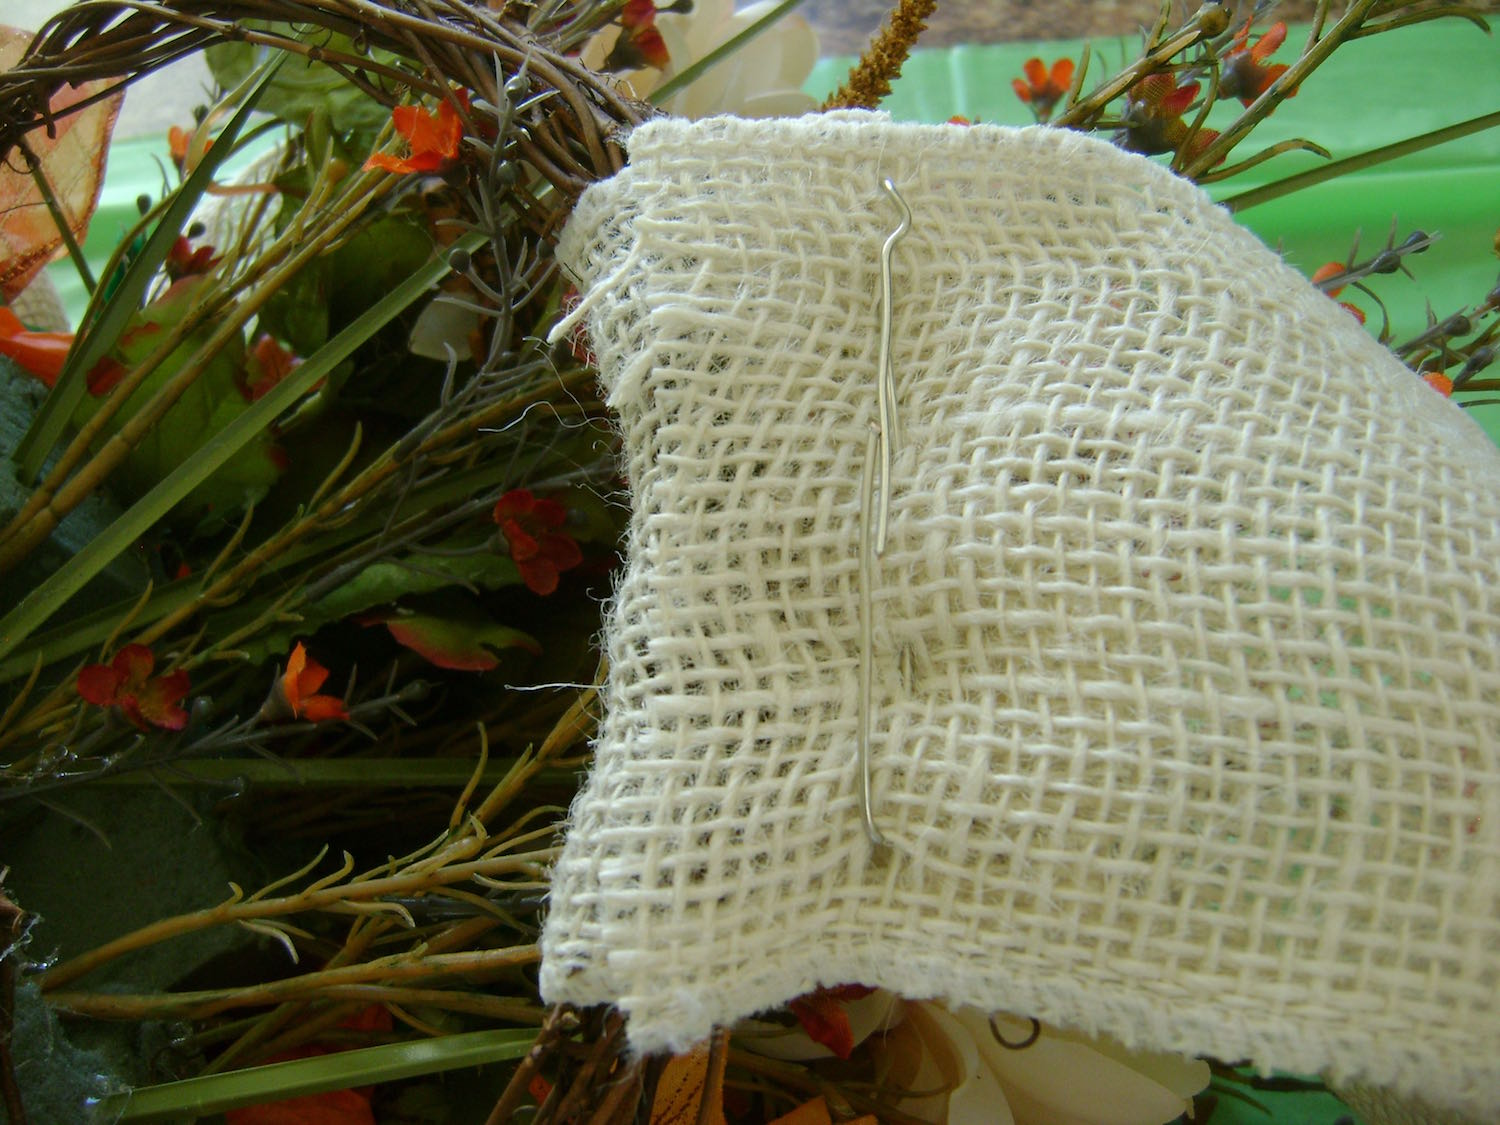 step 11 - If you prefer to hang your basket from a ribbon, double the length you need and cut a piece from the burlap. Fold the ribbon in half with the basket handle in between.Weave heavy wire in and out of the overlapped ends of the burlap to secure them together.